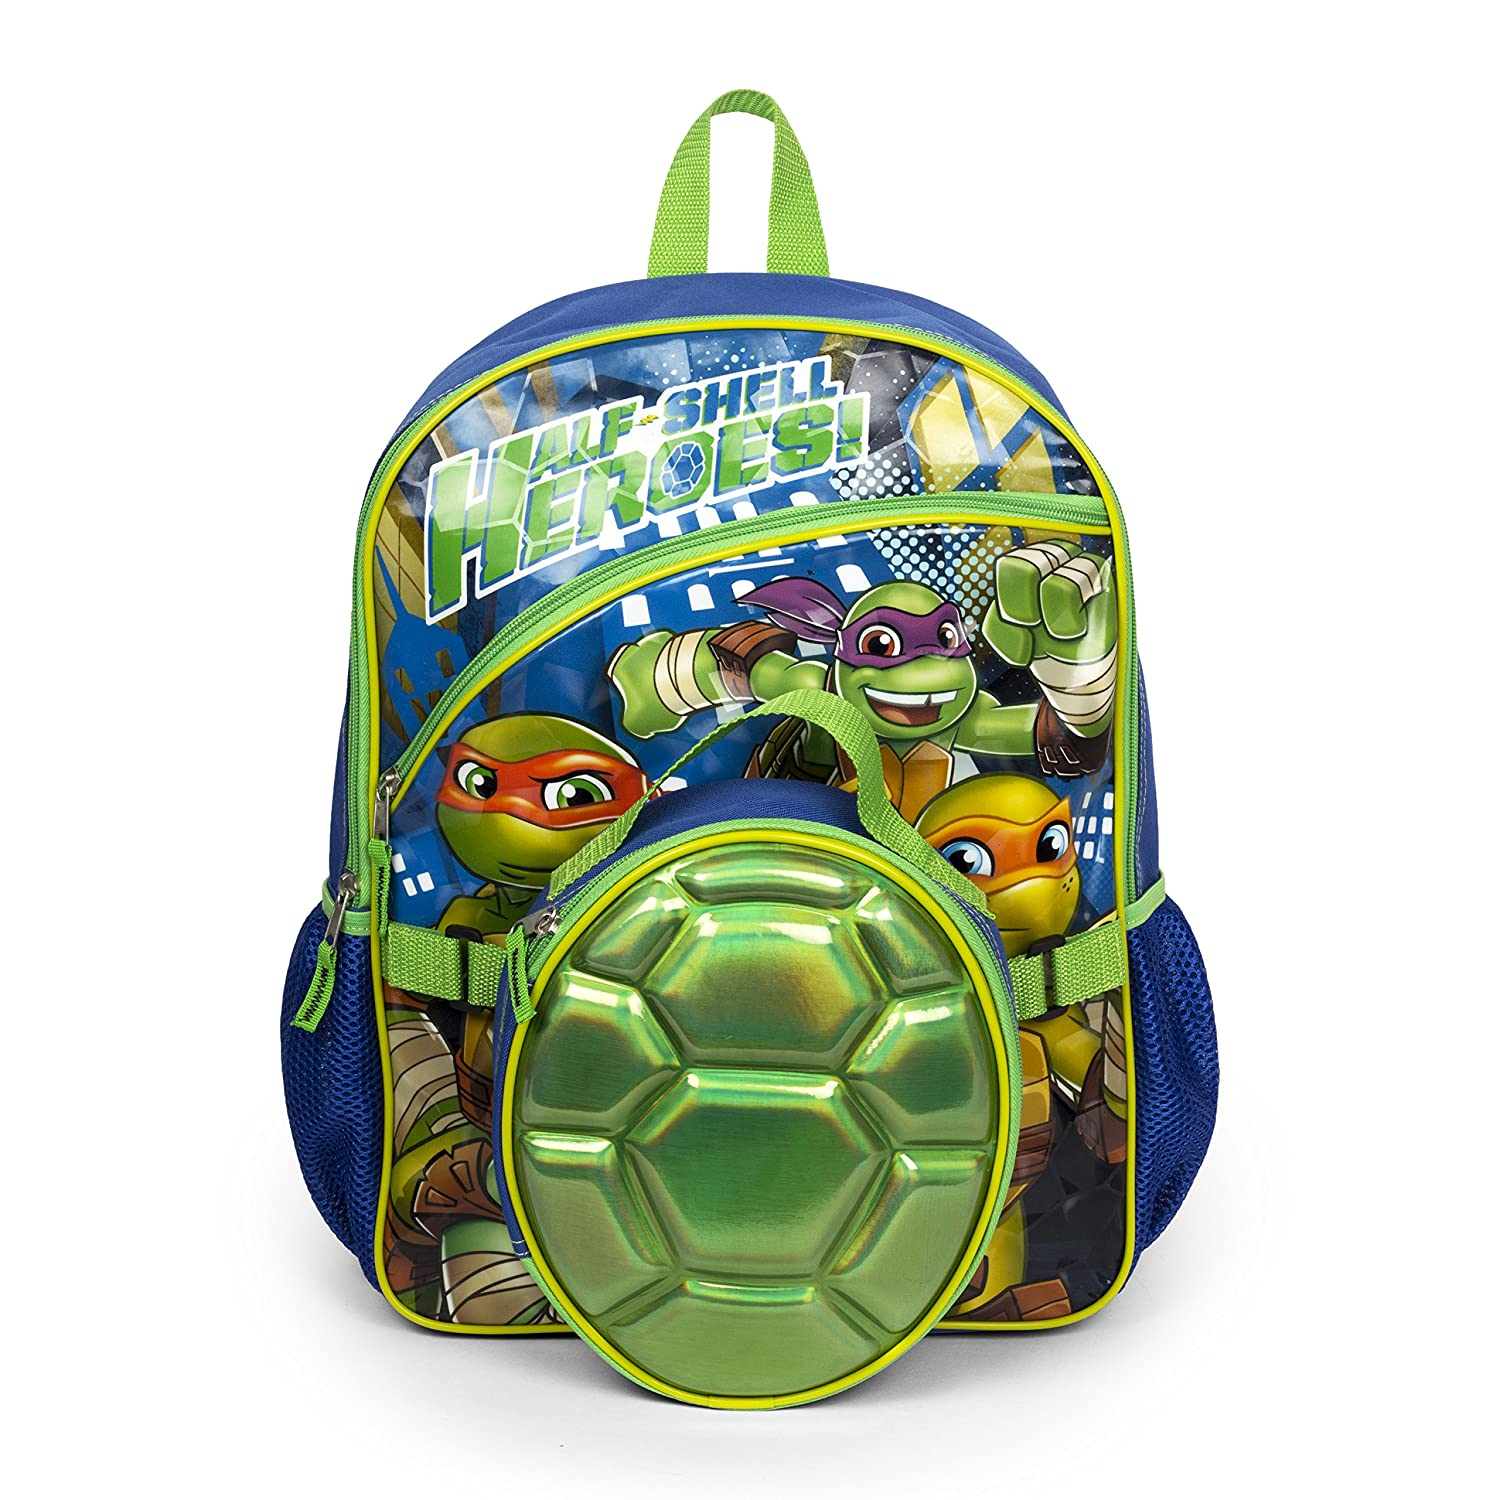 Nickelodeon Teenage Mutant Ninja Turtles Backpack with Insulated Shell Lunch Kit